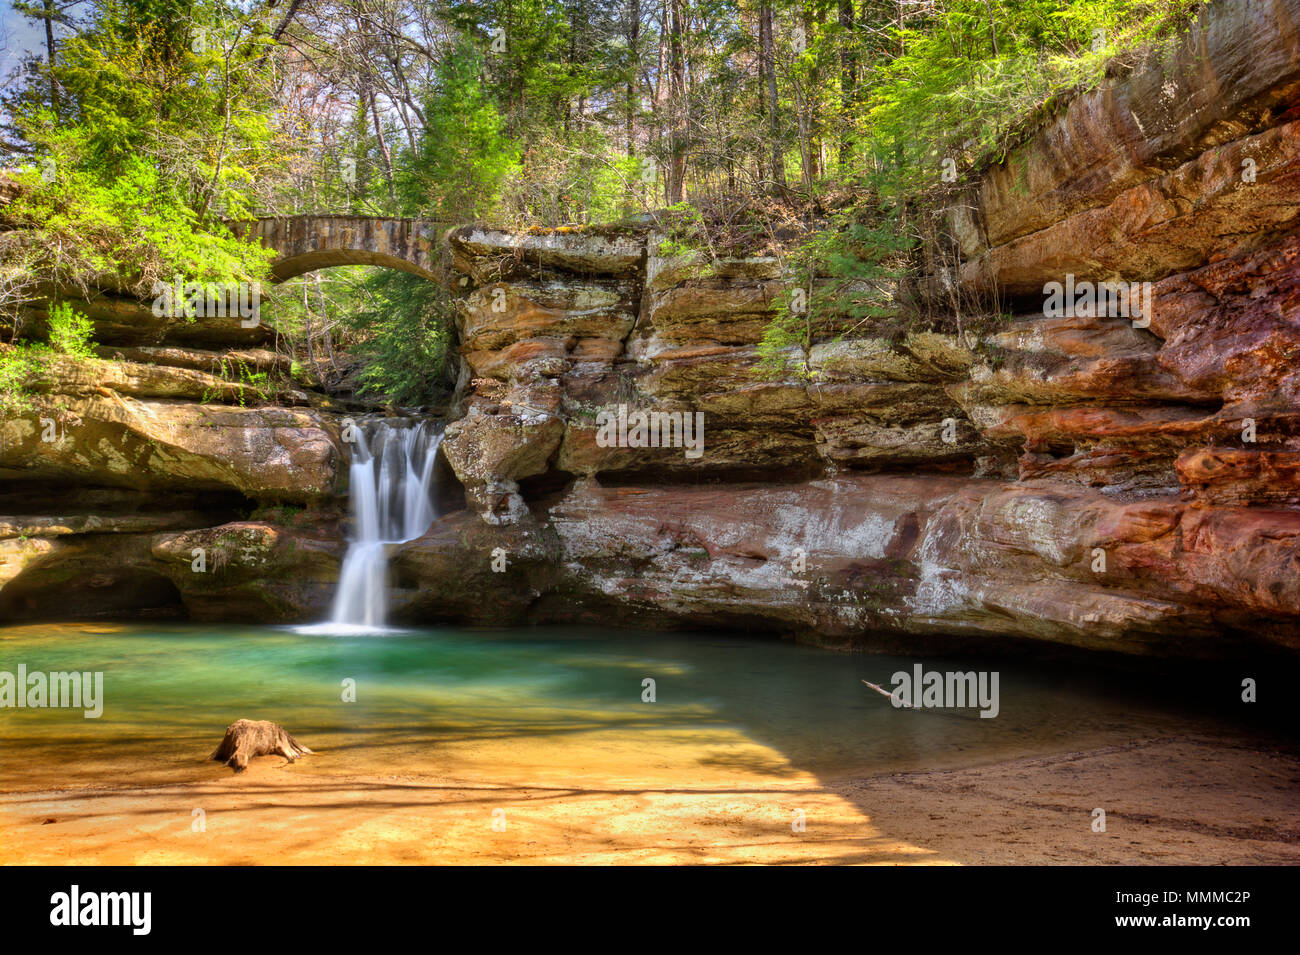 Upper Falls at Old Man's Cave in Hocking Hills Ohio. This is a very popular tourist attraction in Ohio. - Stock Image